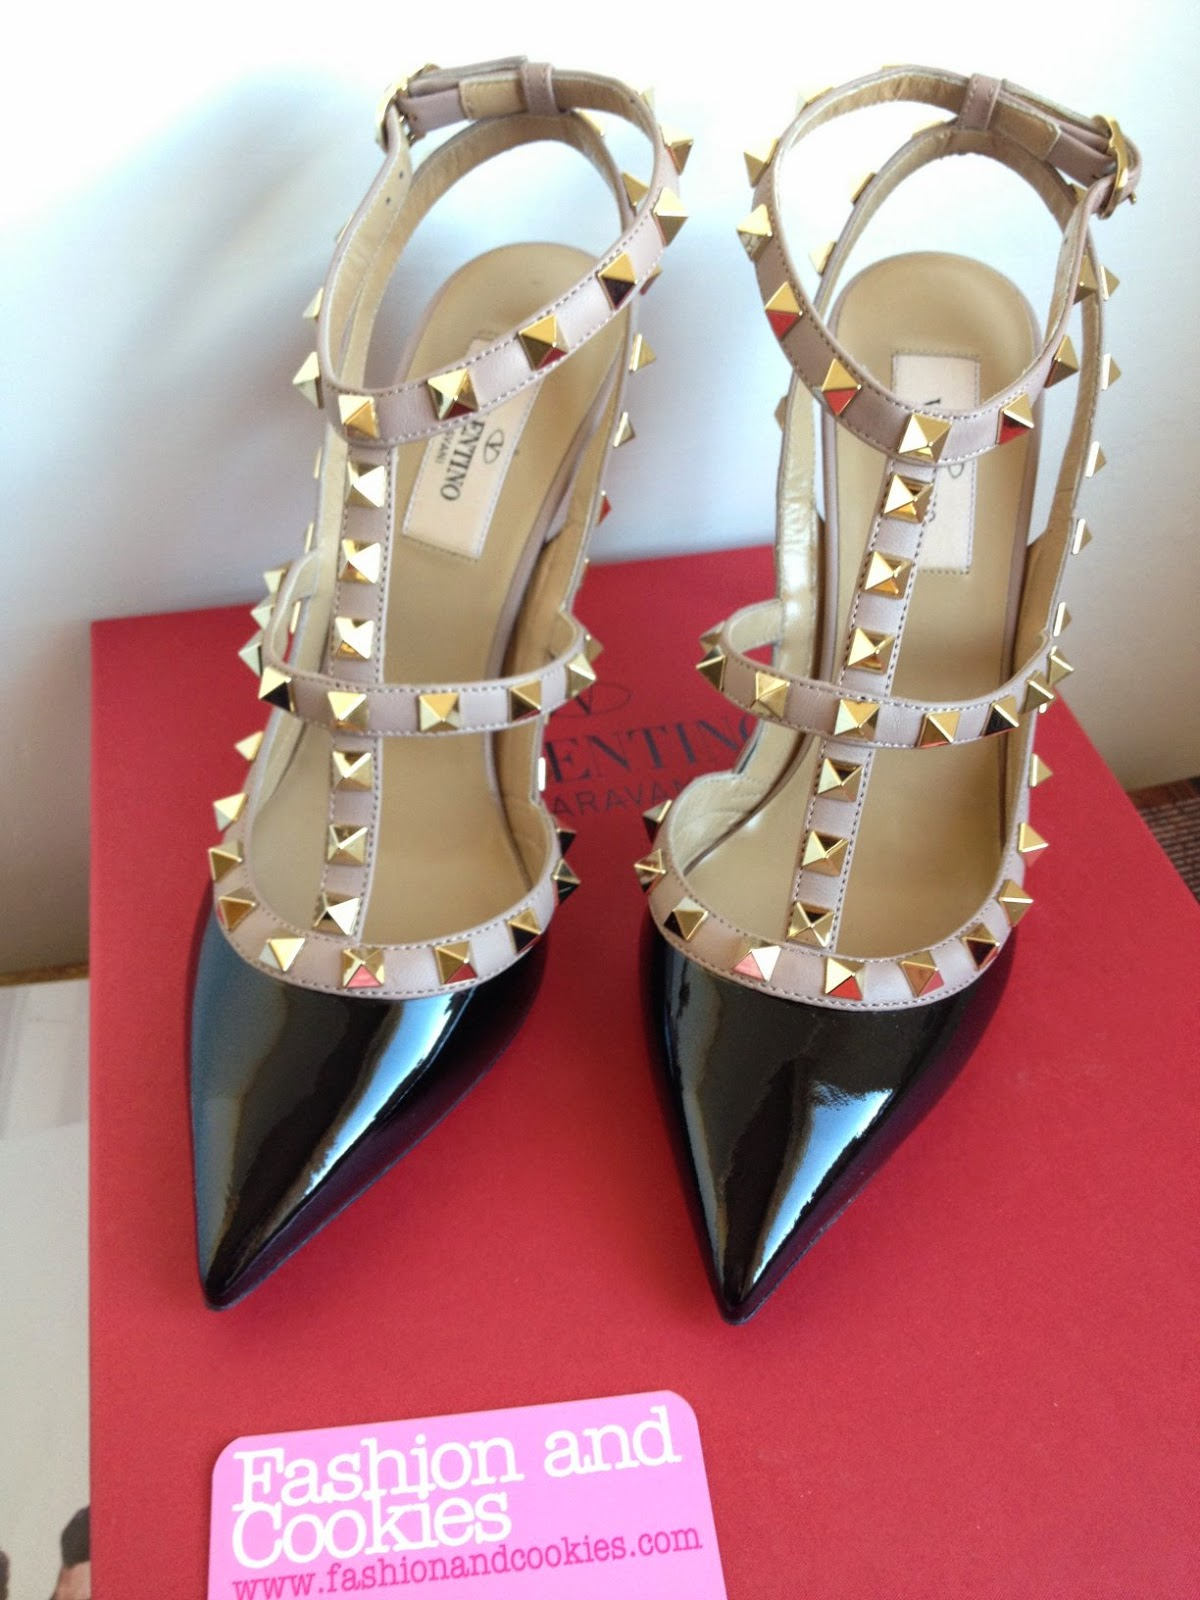 Valentino Rockstud pumps review, Valentino rockstud fit and size, Valentino Rockstud review, Valentino Rockstud patent leather, Fashion and Cookies fashion blog, fashion blogger